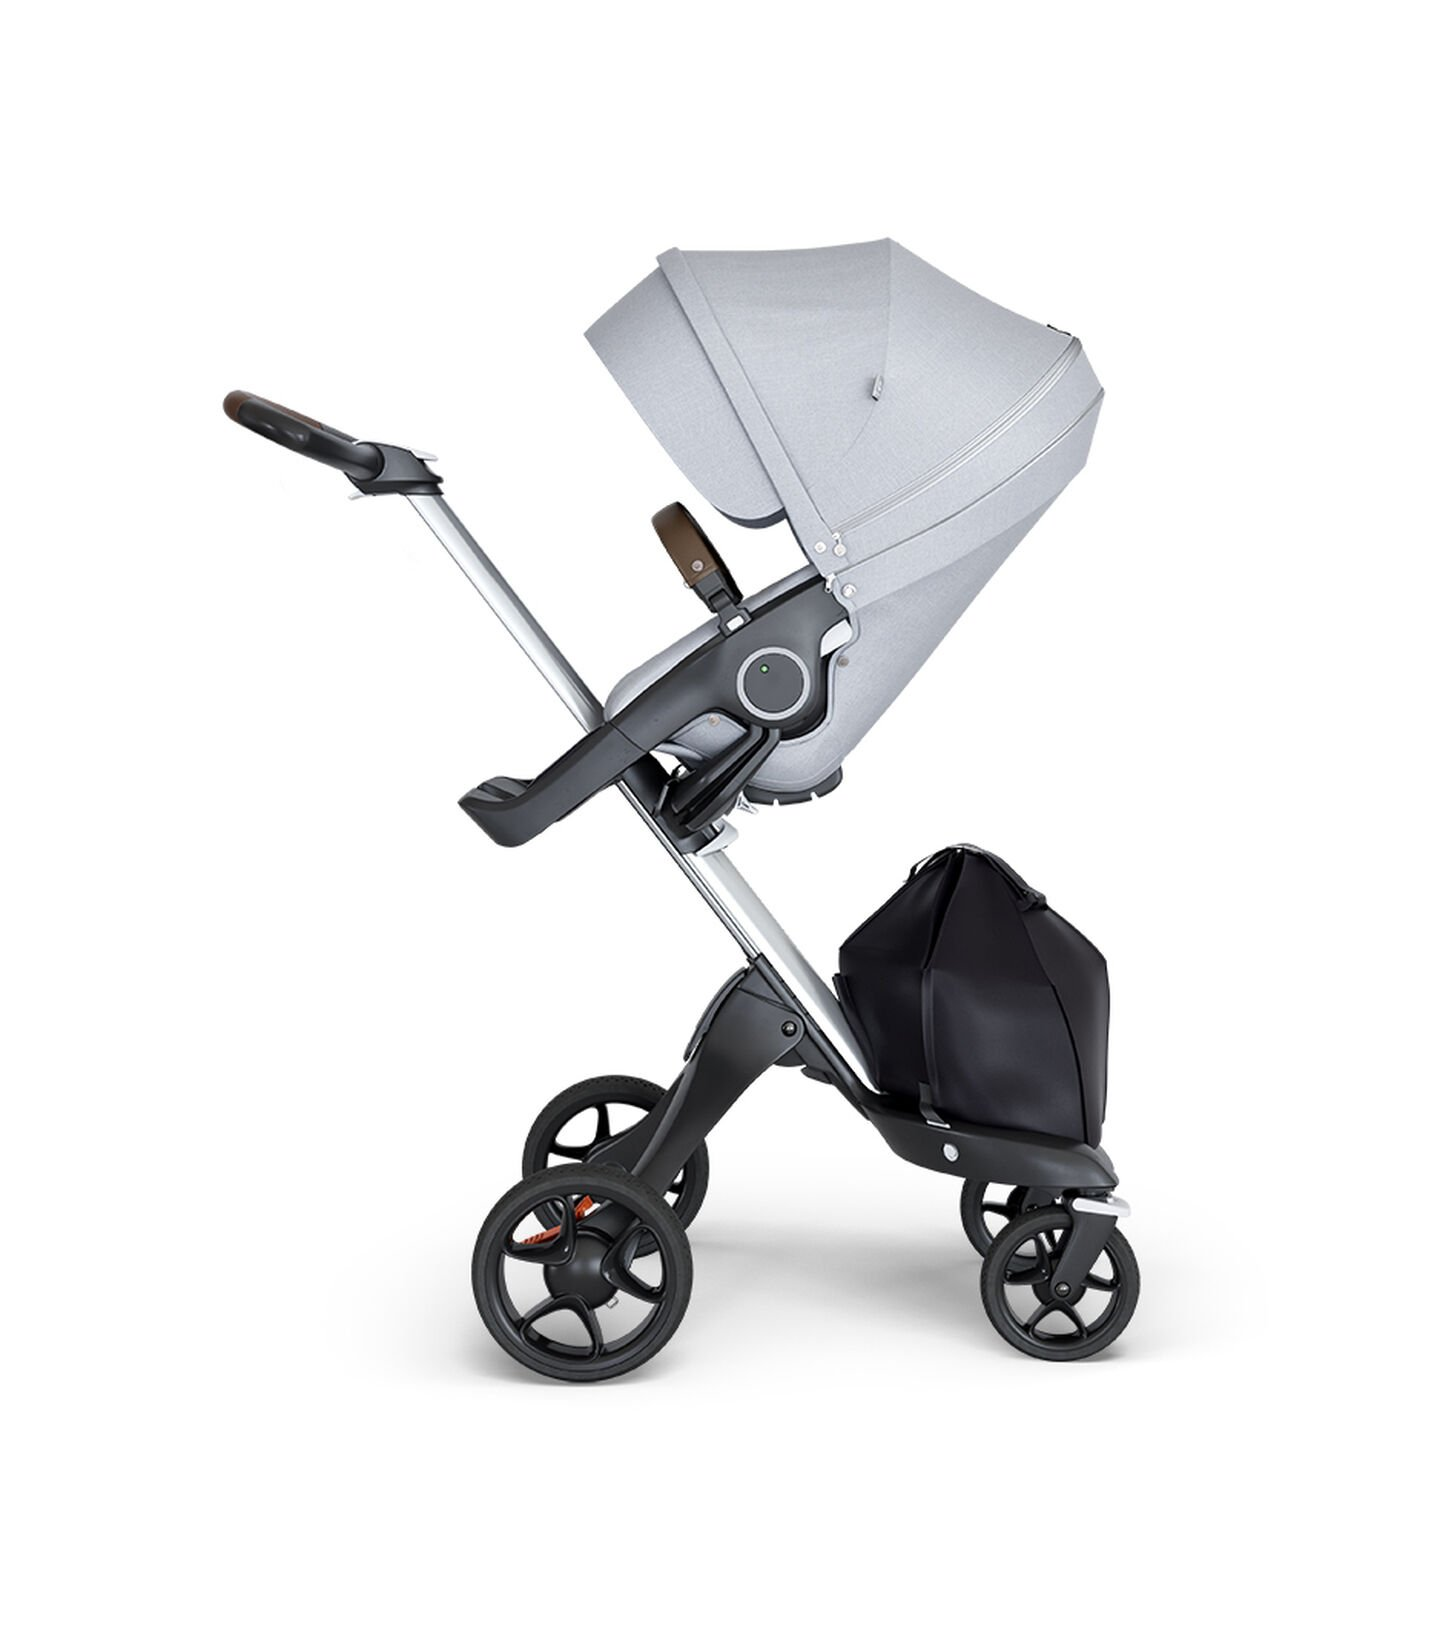 Stokke® Xplory® wtih Silver Chassis and Leatherette Brown handle. Stokke® Stroller Seat Grey Melange.